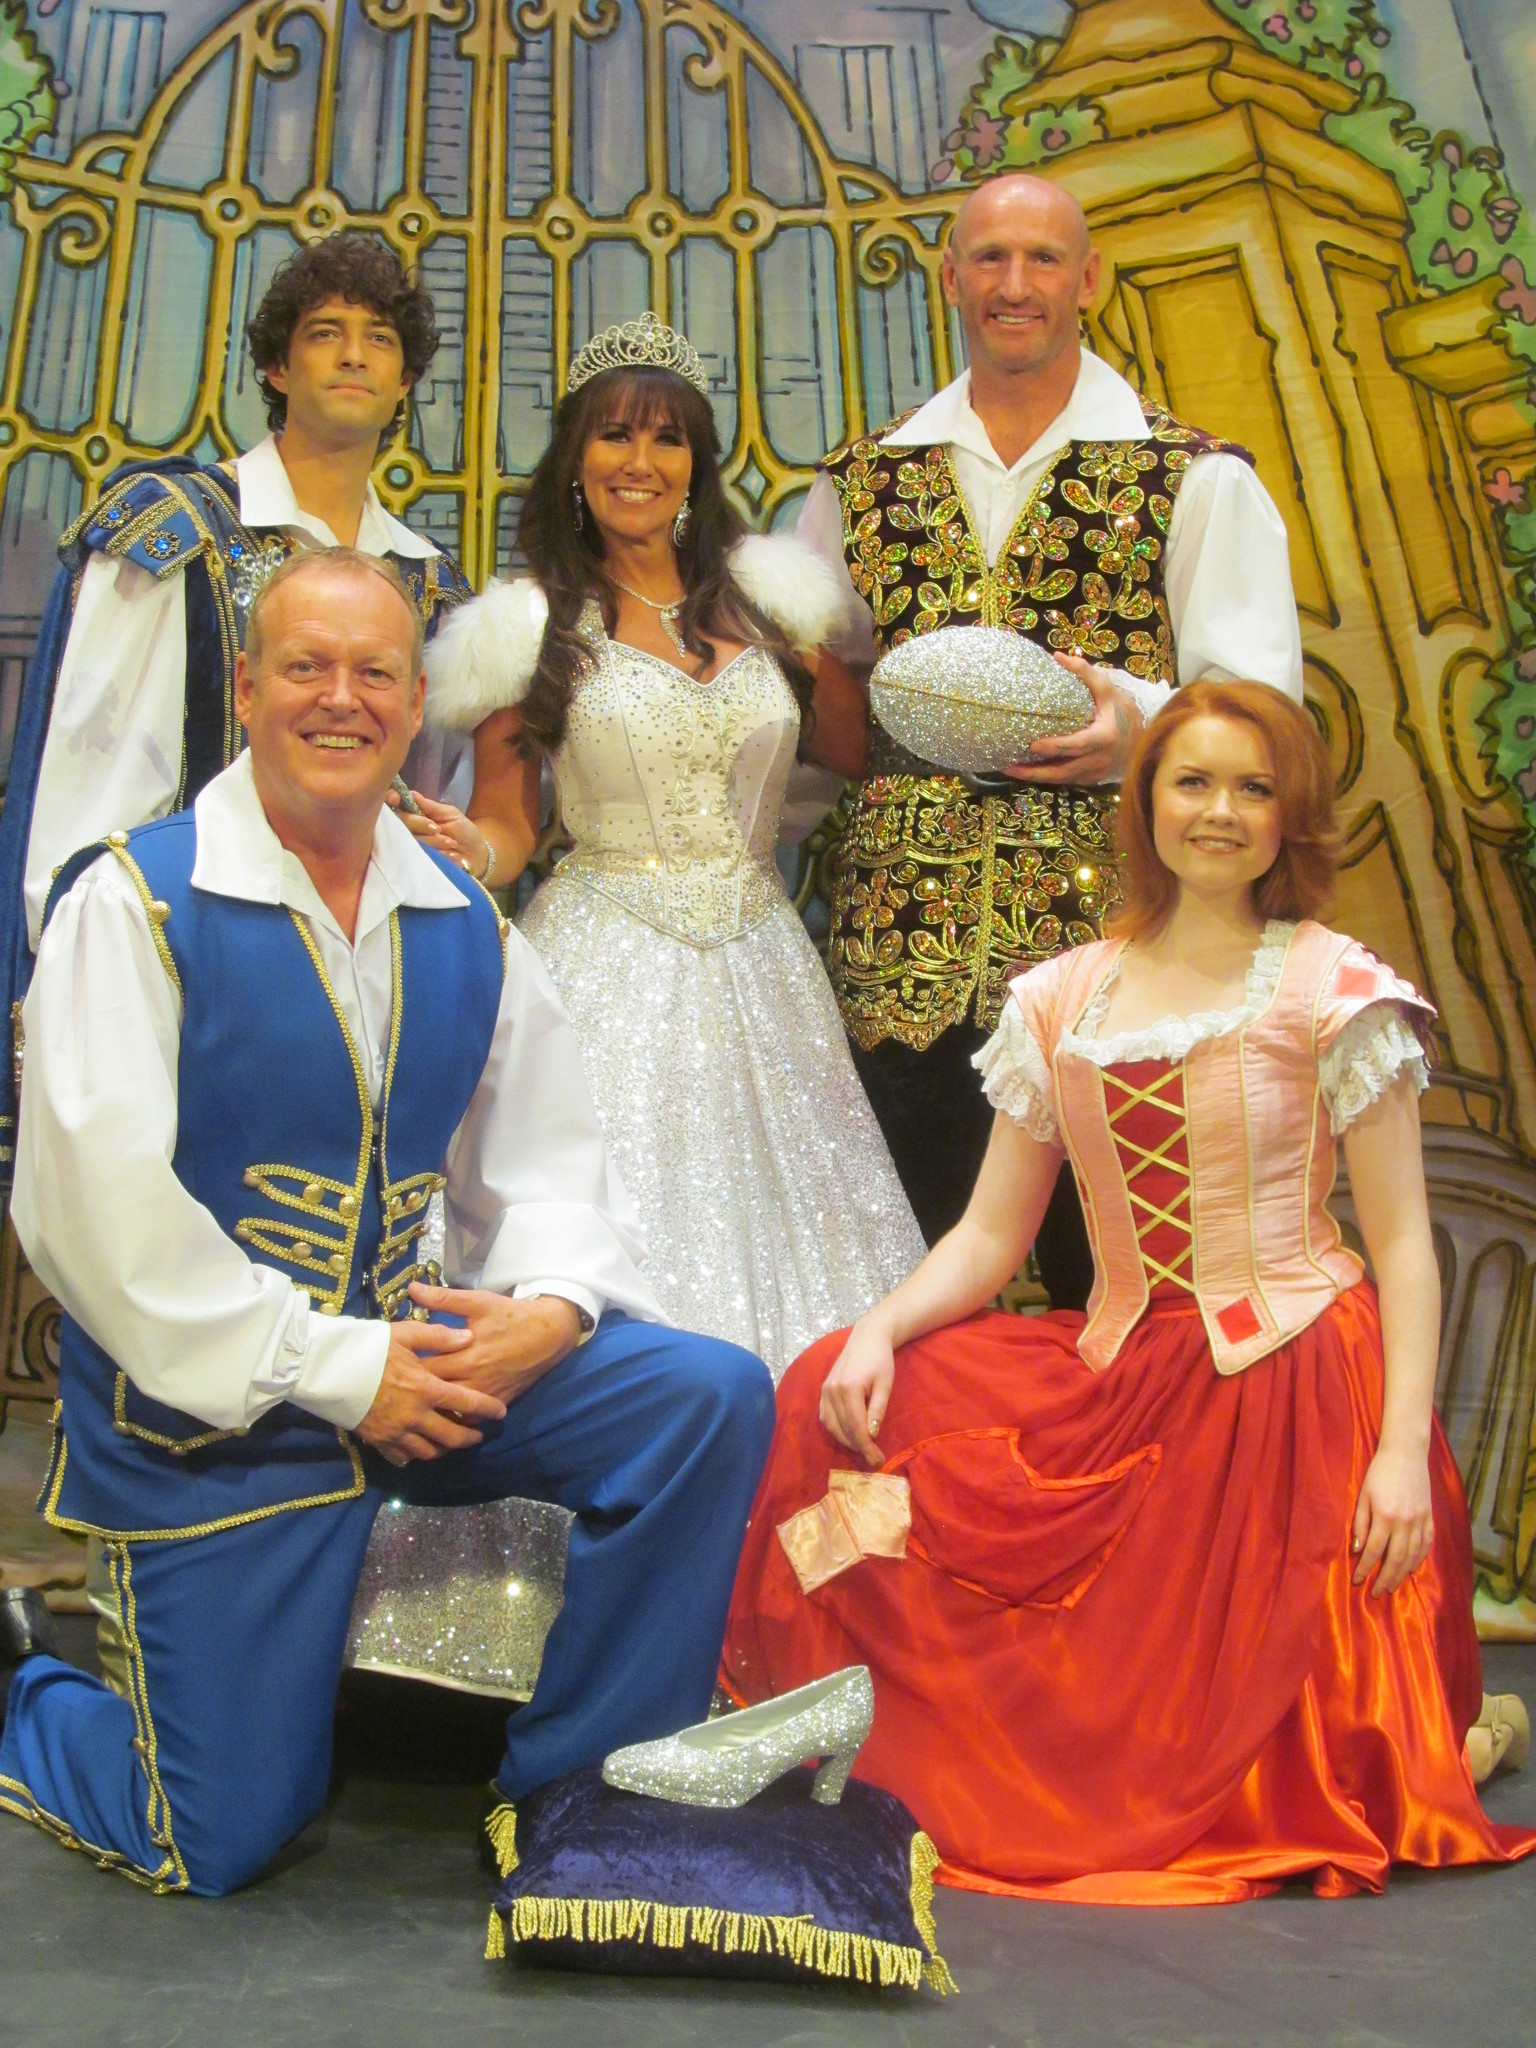 Cinderella cast members, Lee Mead, Linda Lusardi, Gareth Thomas, Andy Jones and Holly Bluett. Photo: Andy Howells